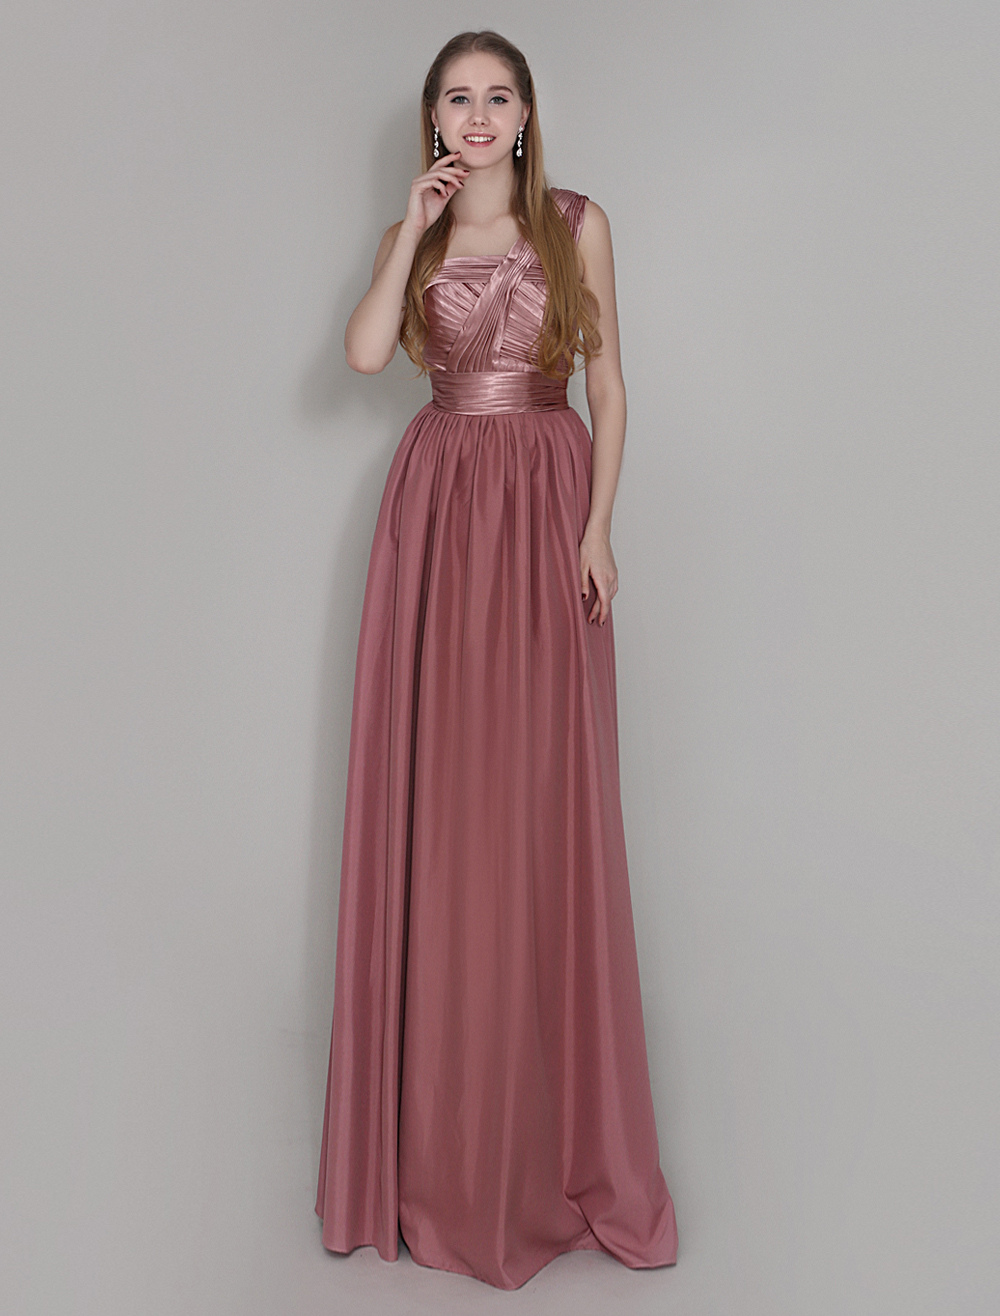 Maroon One Shoulder Bridesmaid Dress Floor Length Pleated Wedding Party Dress Wedding Guest Dress